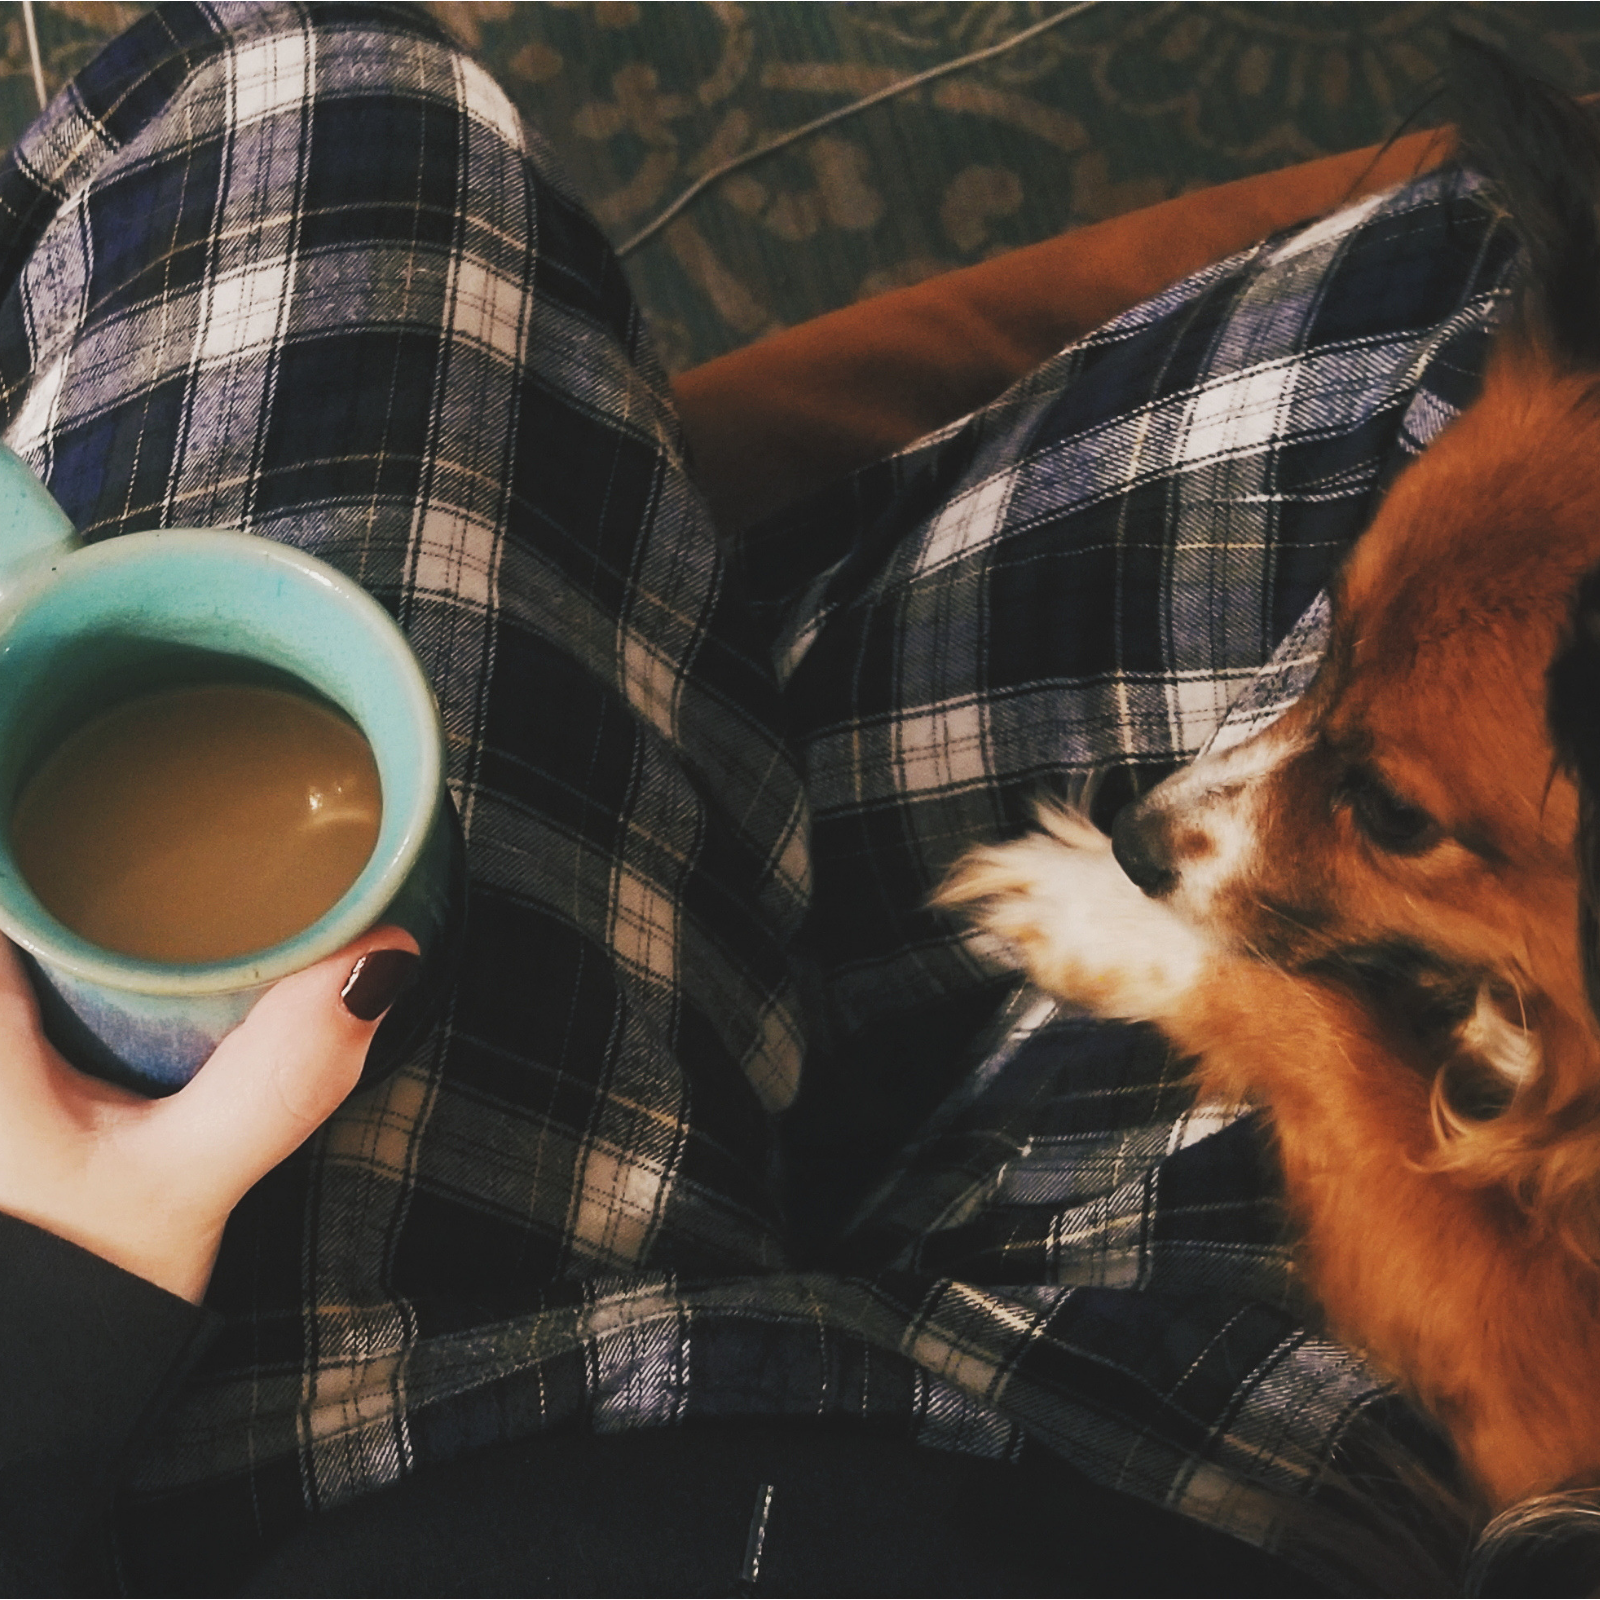 A down shot of a girl in pj pants holding a cup of coffee with a dog in her lap and a devotional book to her left while sitting on a couch